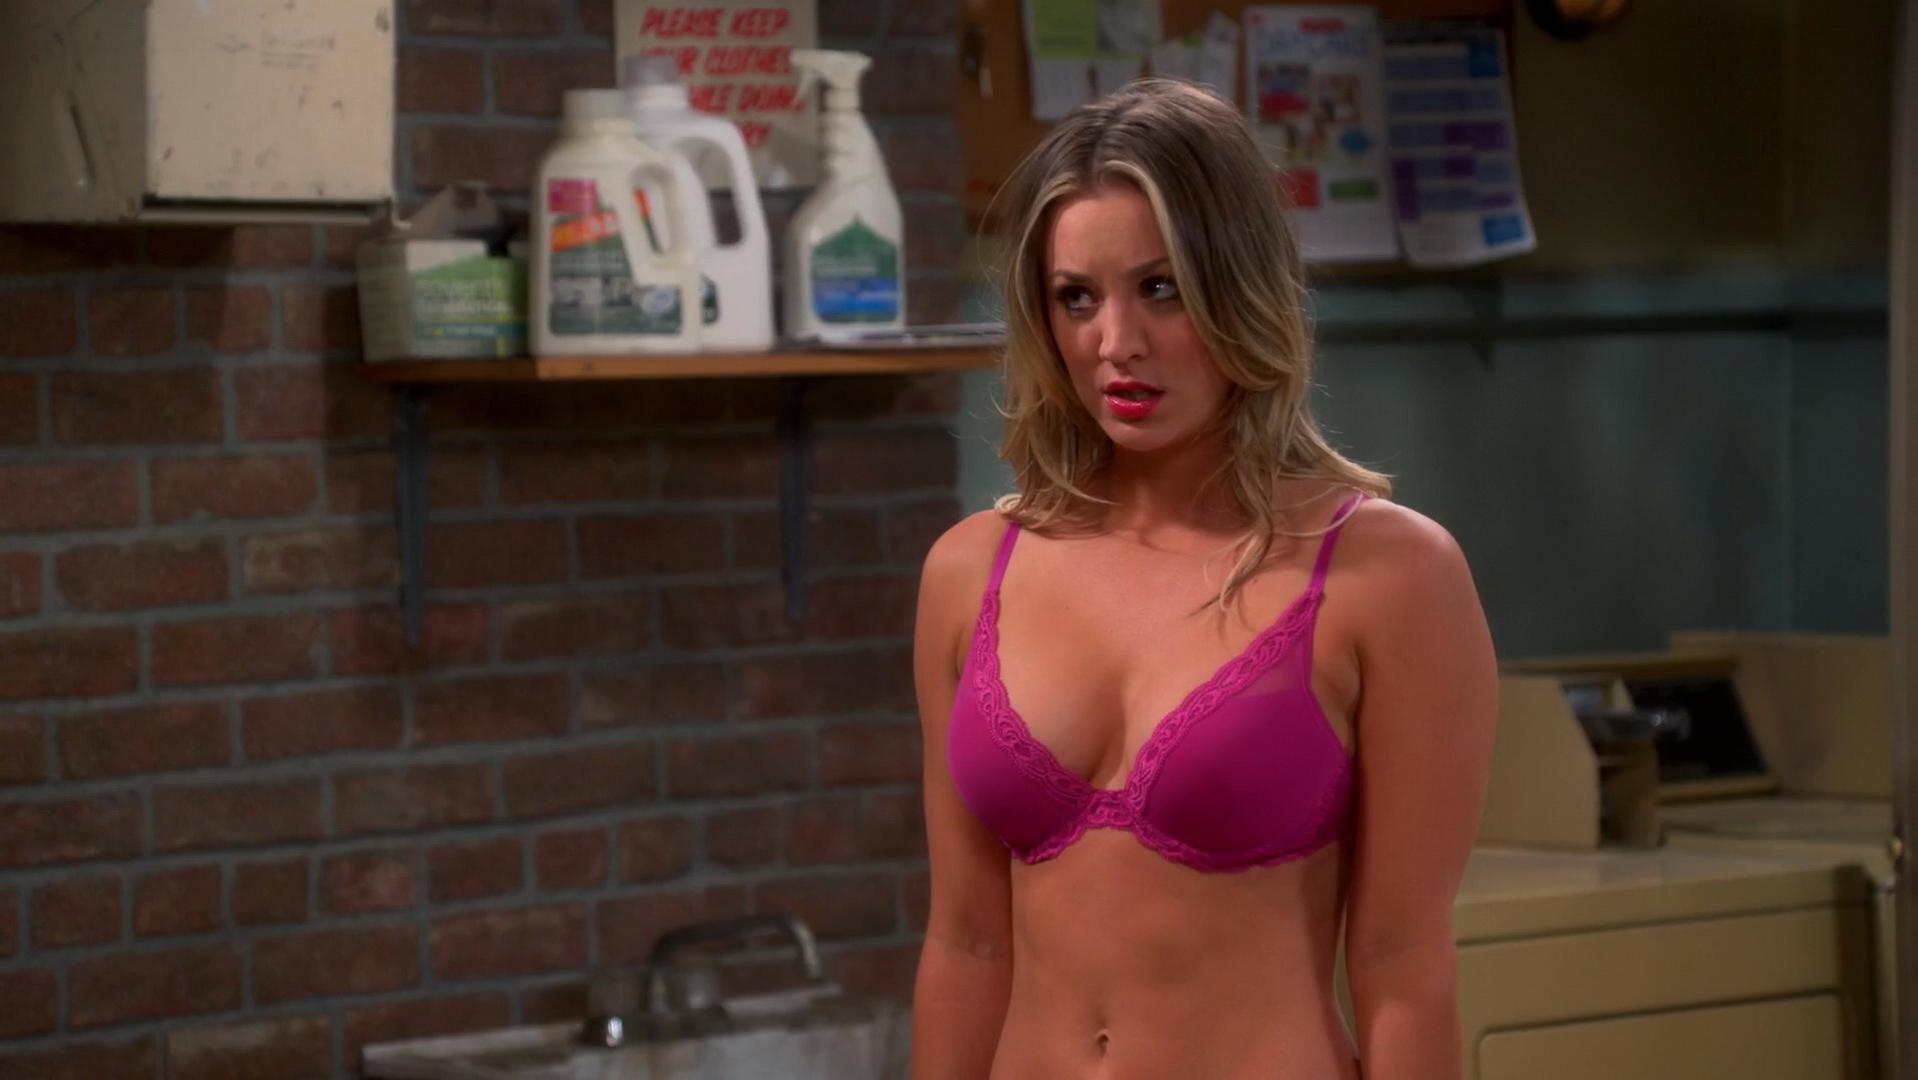 Kaley Cuoco sexy - The Big Bang Theory s07e11 (2013)